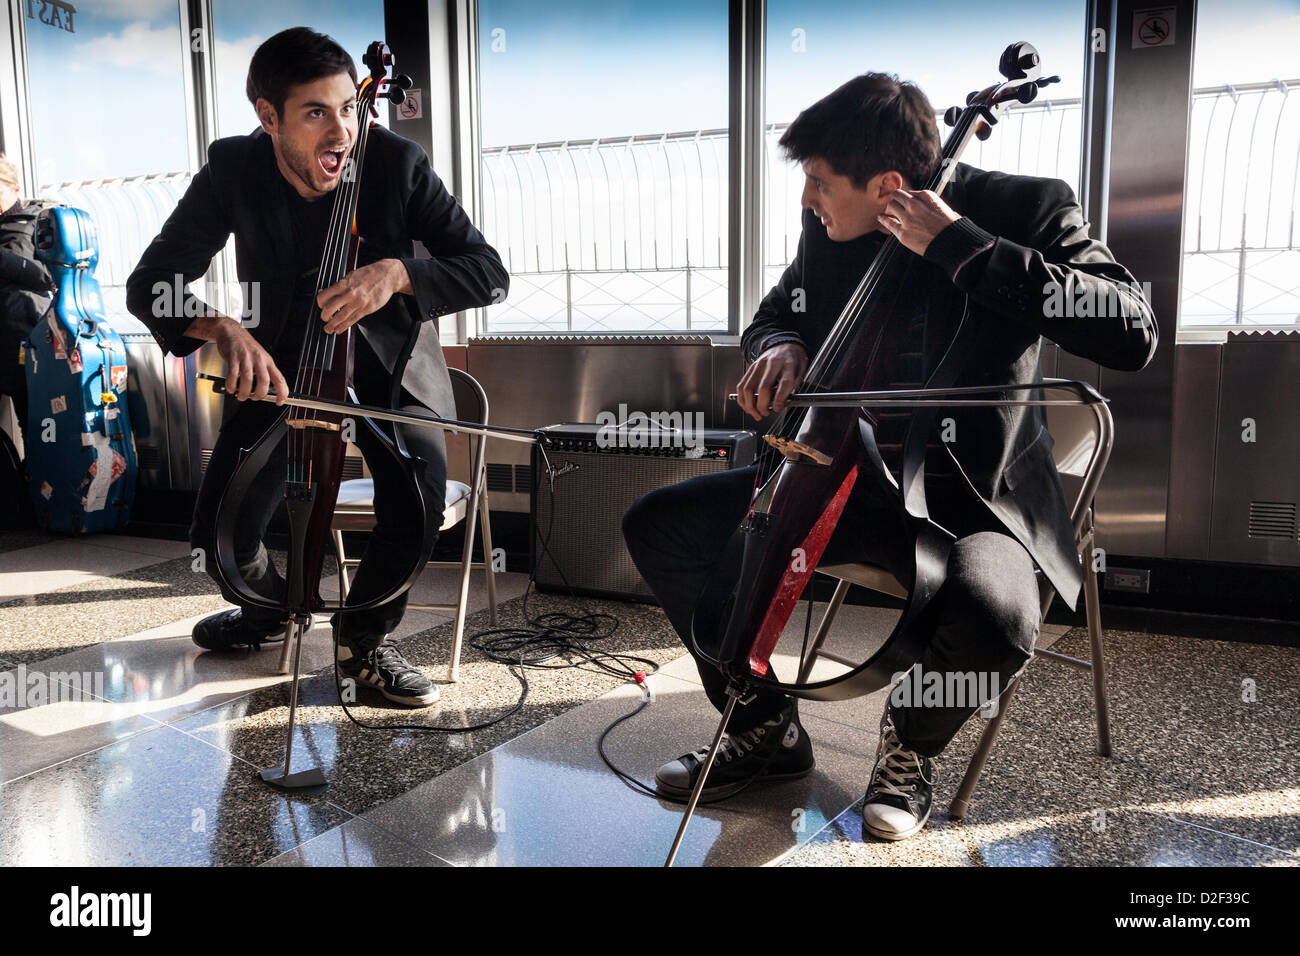 2CELLOS Stjepan Hauser Luka Sulic at the Empire State Building's